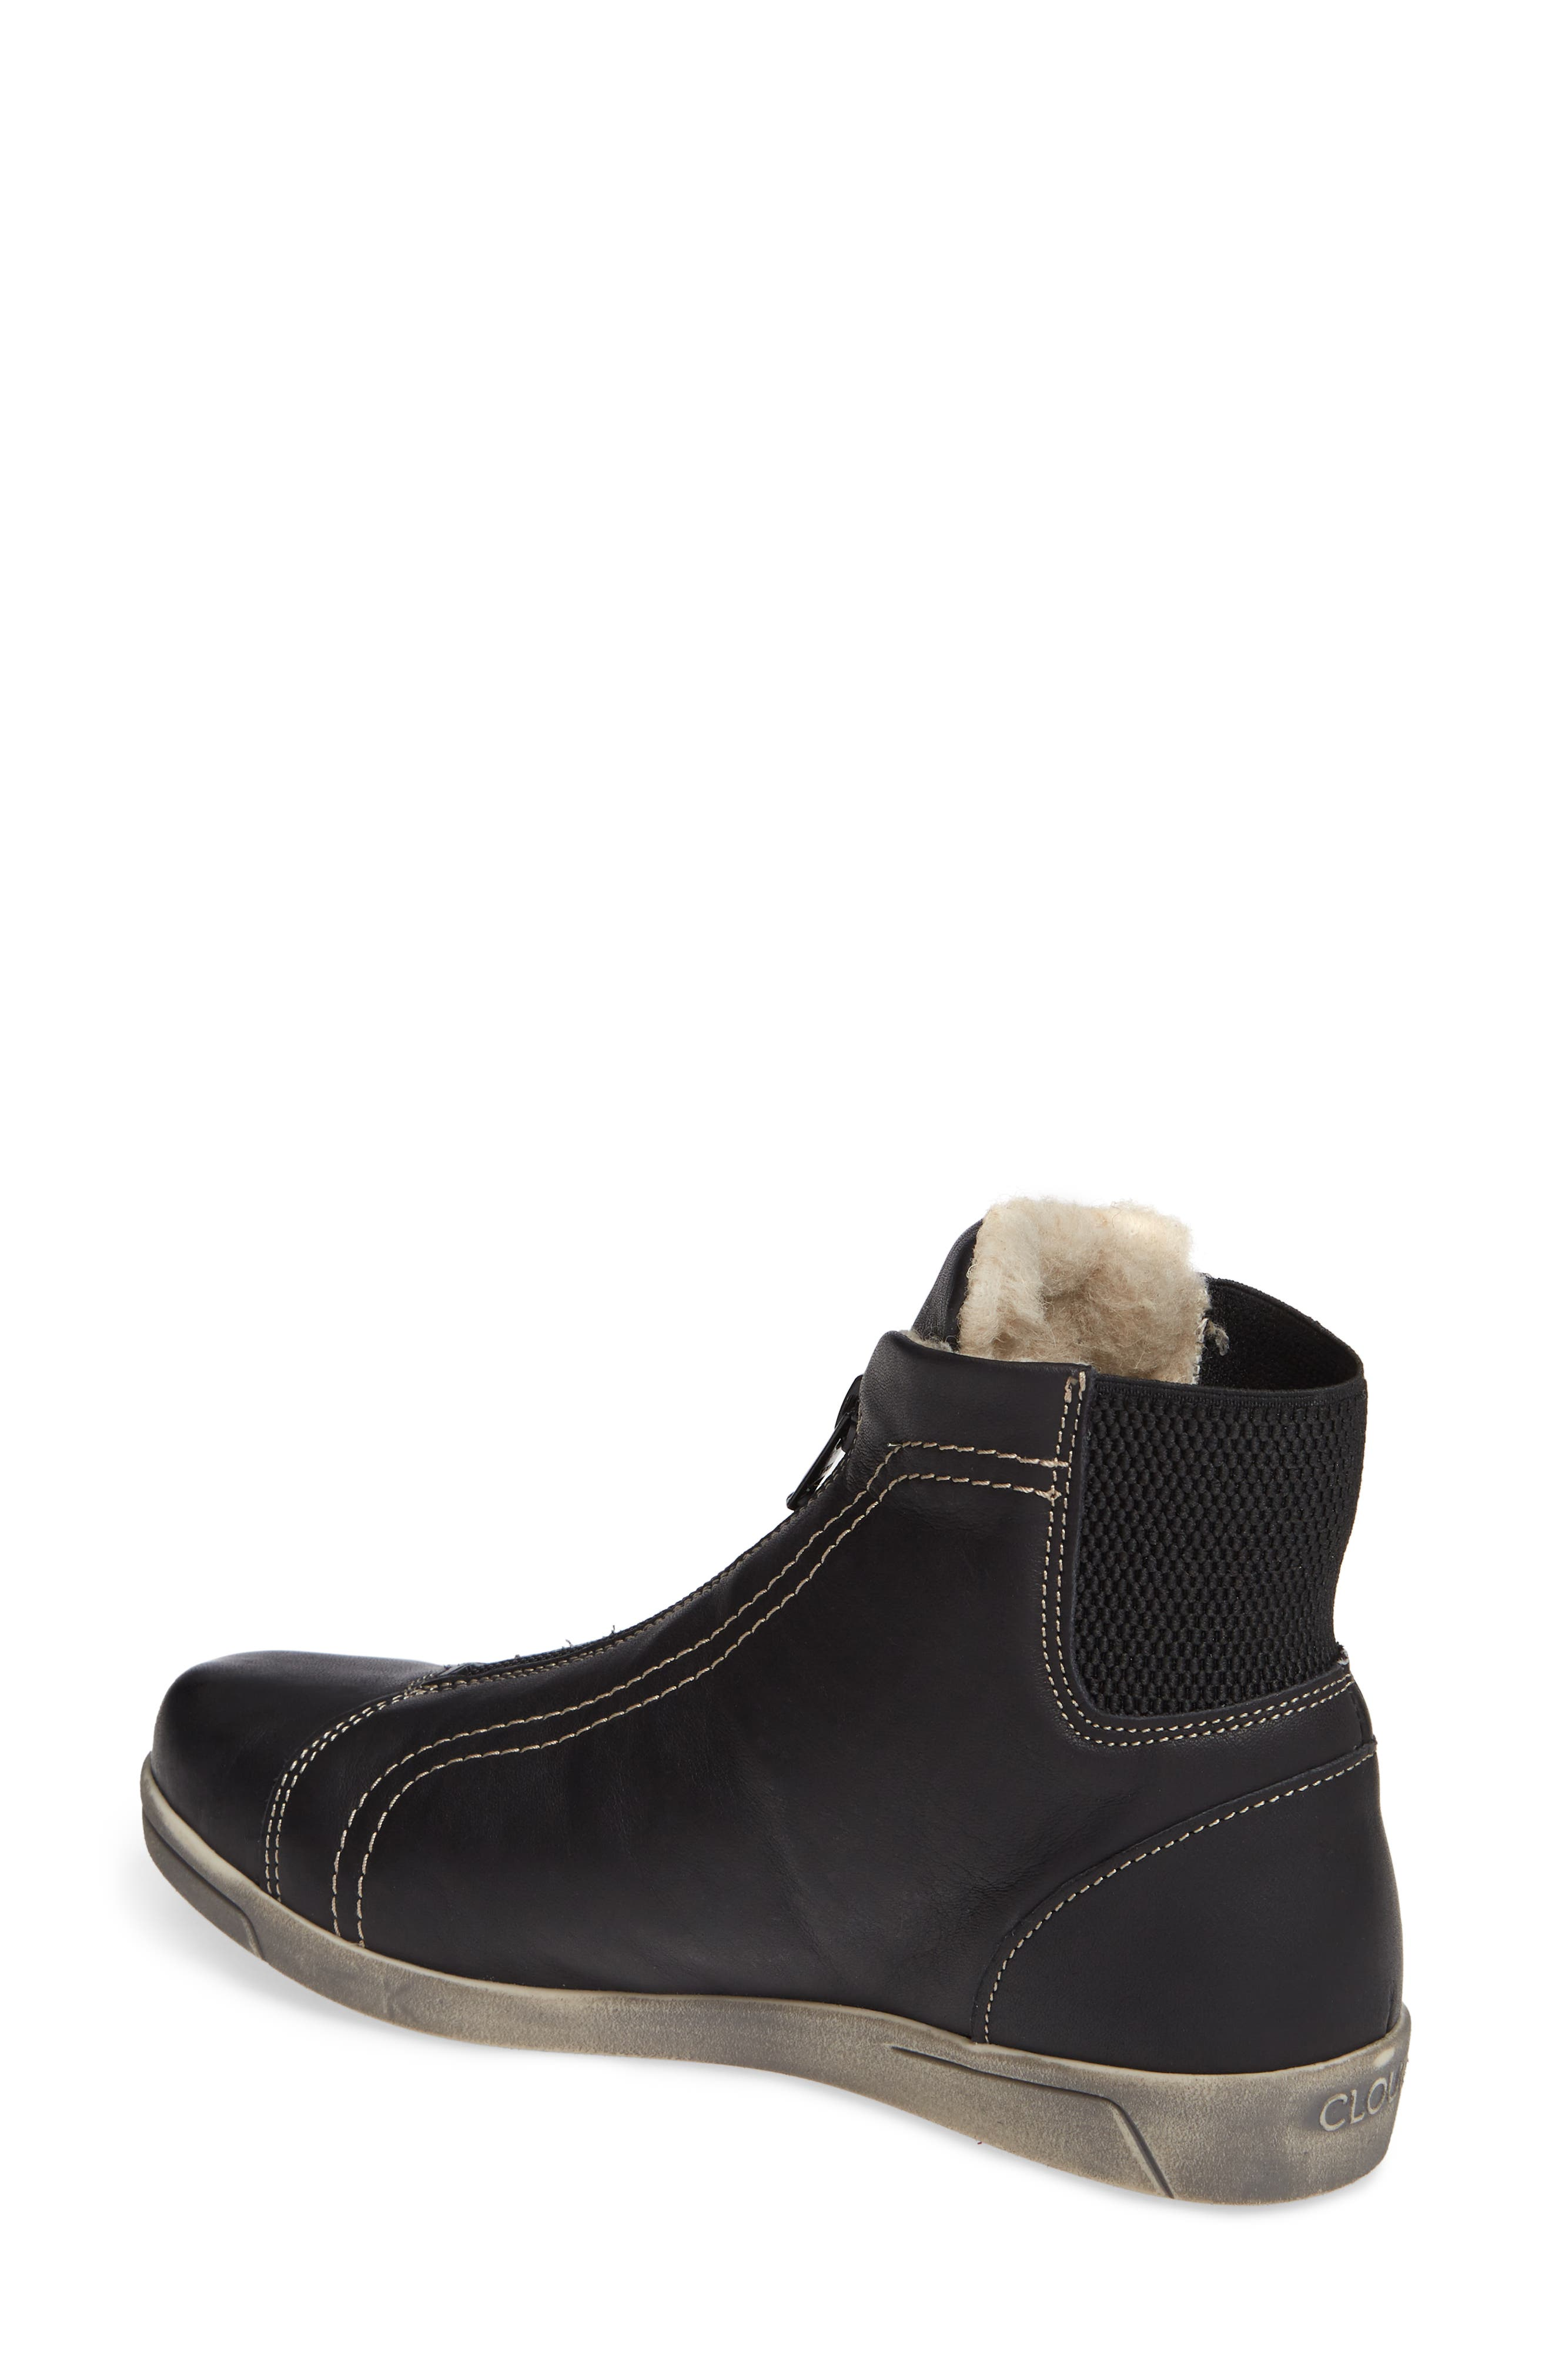 Amiga Wool Lined Bootie,                             Alternate thumbnail 2, color,                             BLACK LEATHER